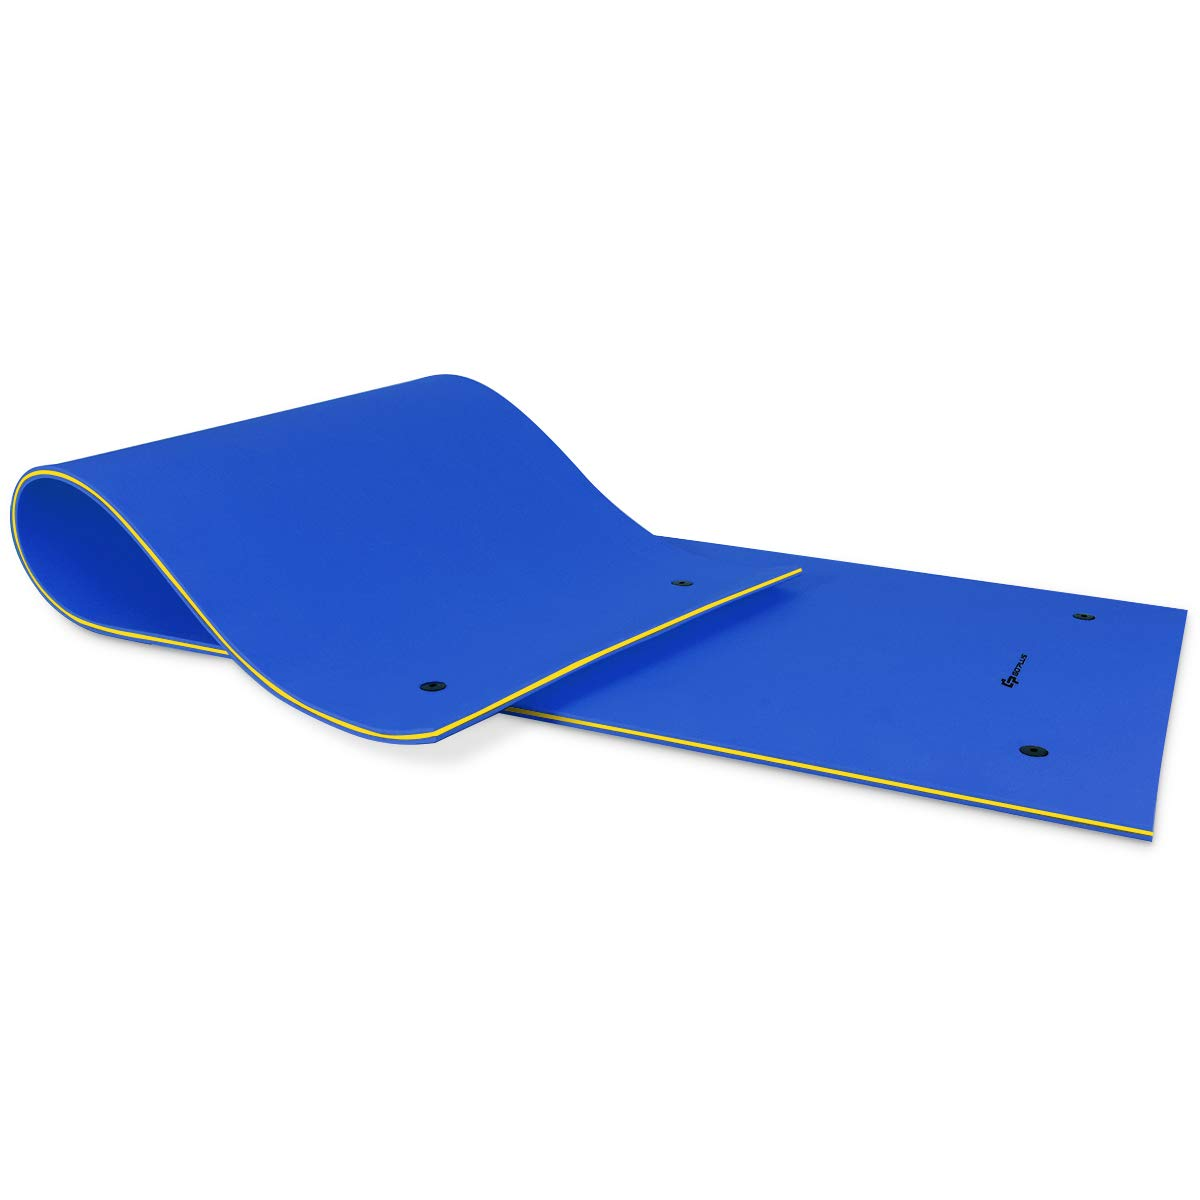 GOPLUS Floating Water Pad, 3 Layer Tear-Resistant XPE Foam,Bouncy and Durable Material, for Pool, Beach, Ocean, Lake